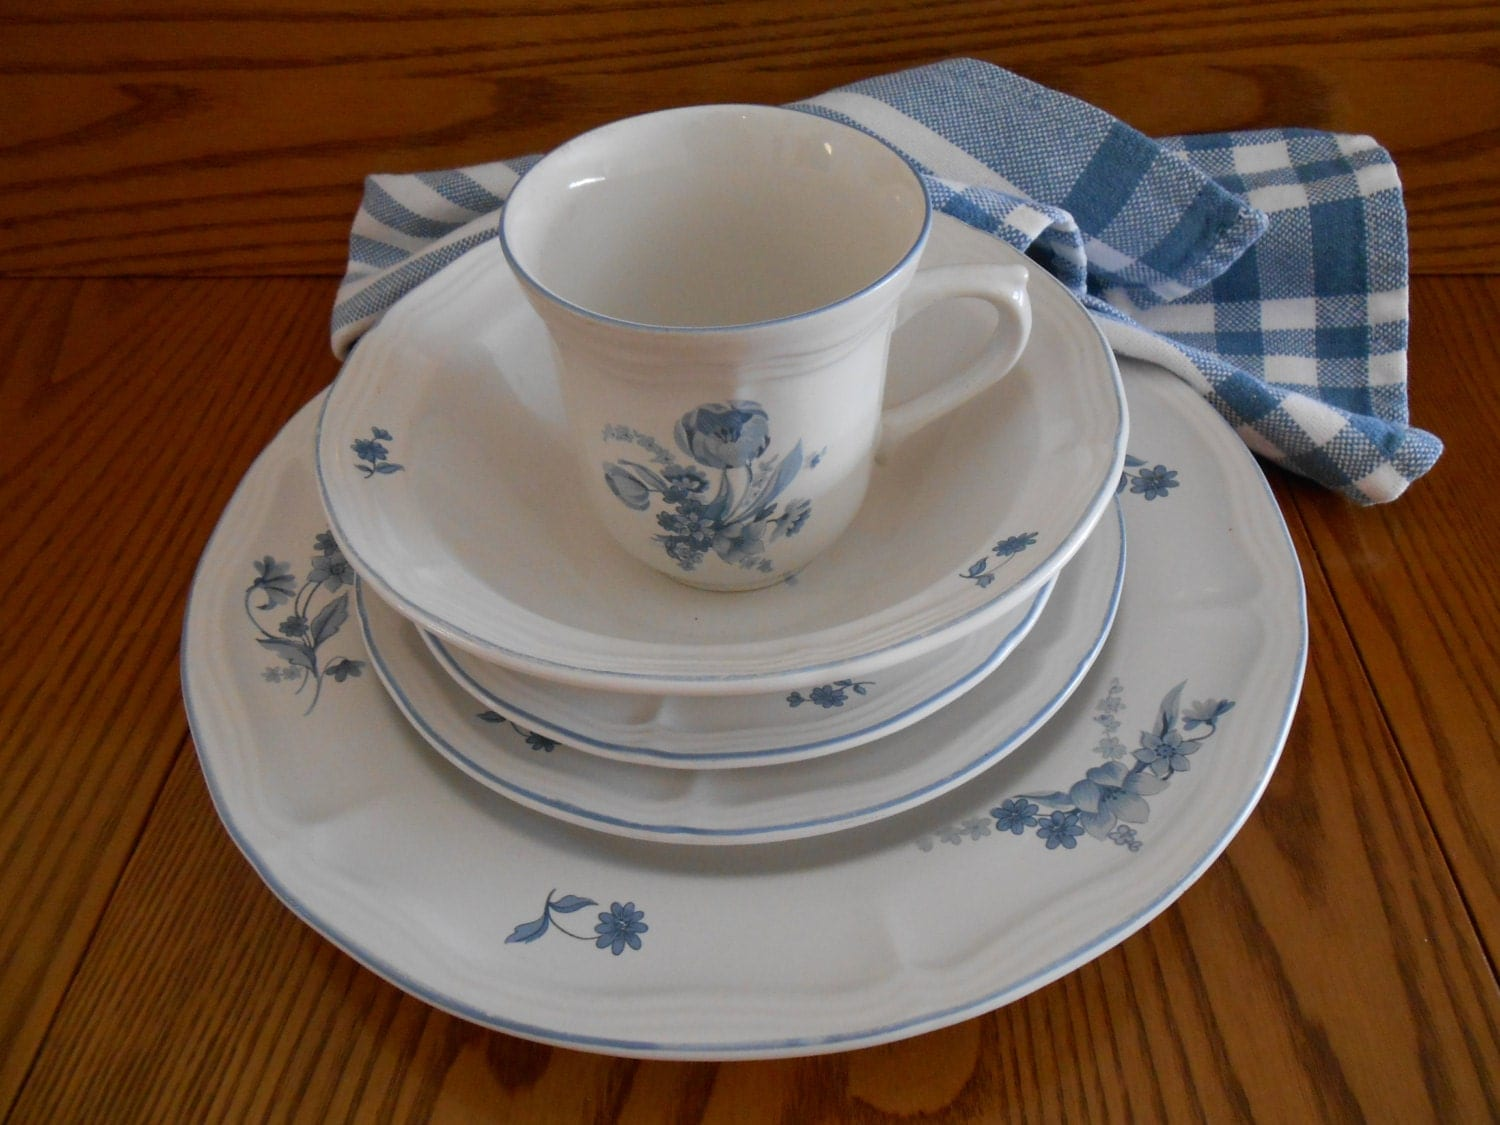 Vintage blue white dishes by brick oven 5 pc place setting for Brick oven stoneware jardin bleu